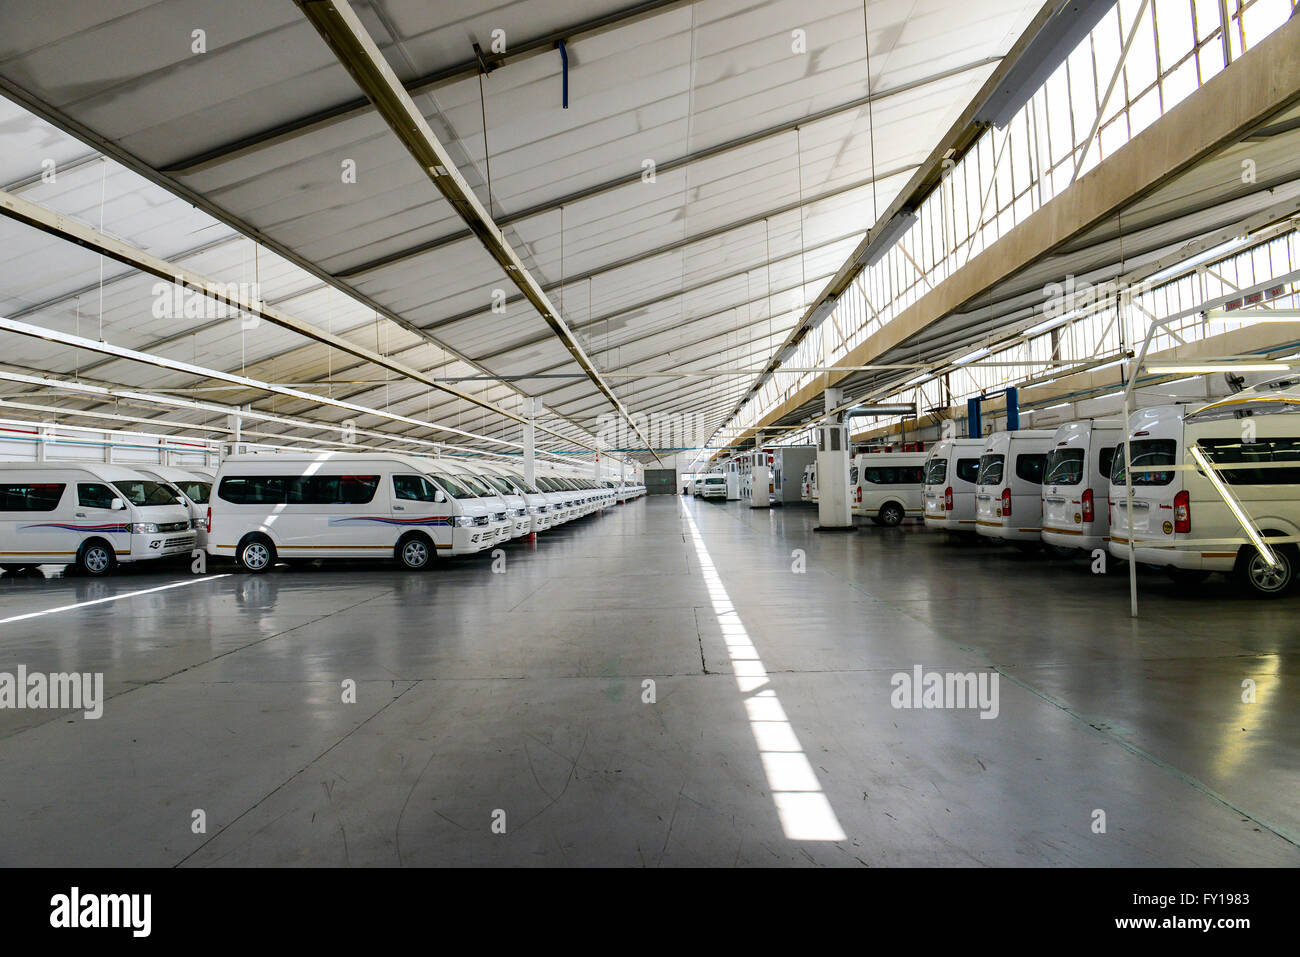 Johannesburg. 19th Apr, 2016. Photo taken on April 19, 2016 shows the buses at the automobile plant of Beijing Automobile - Stock Image